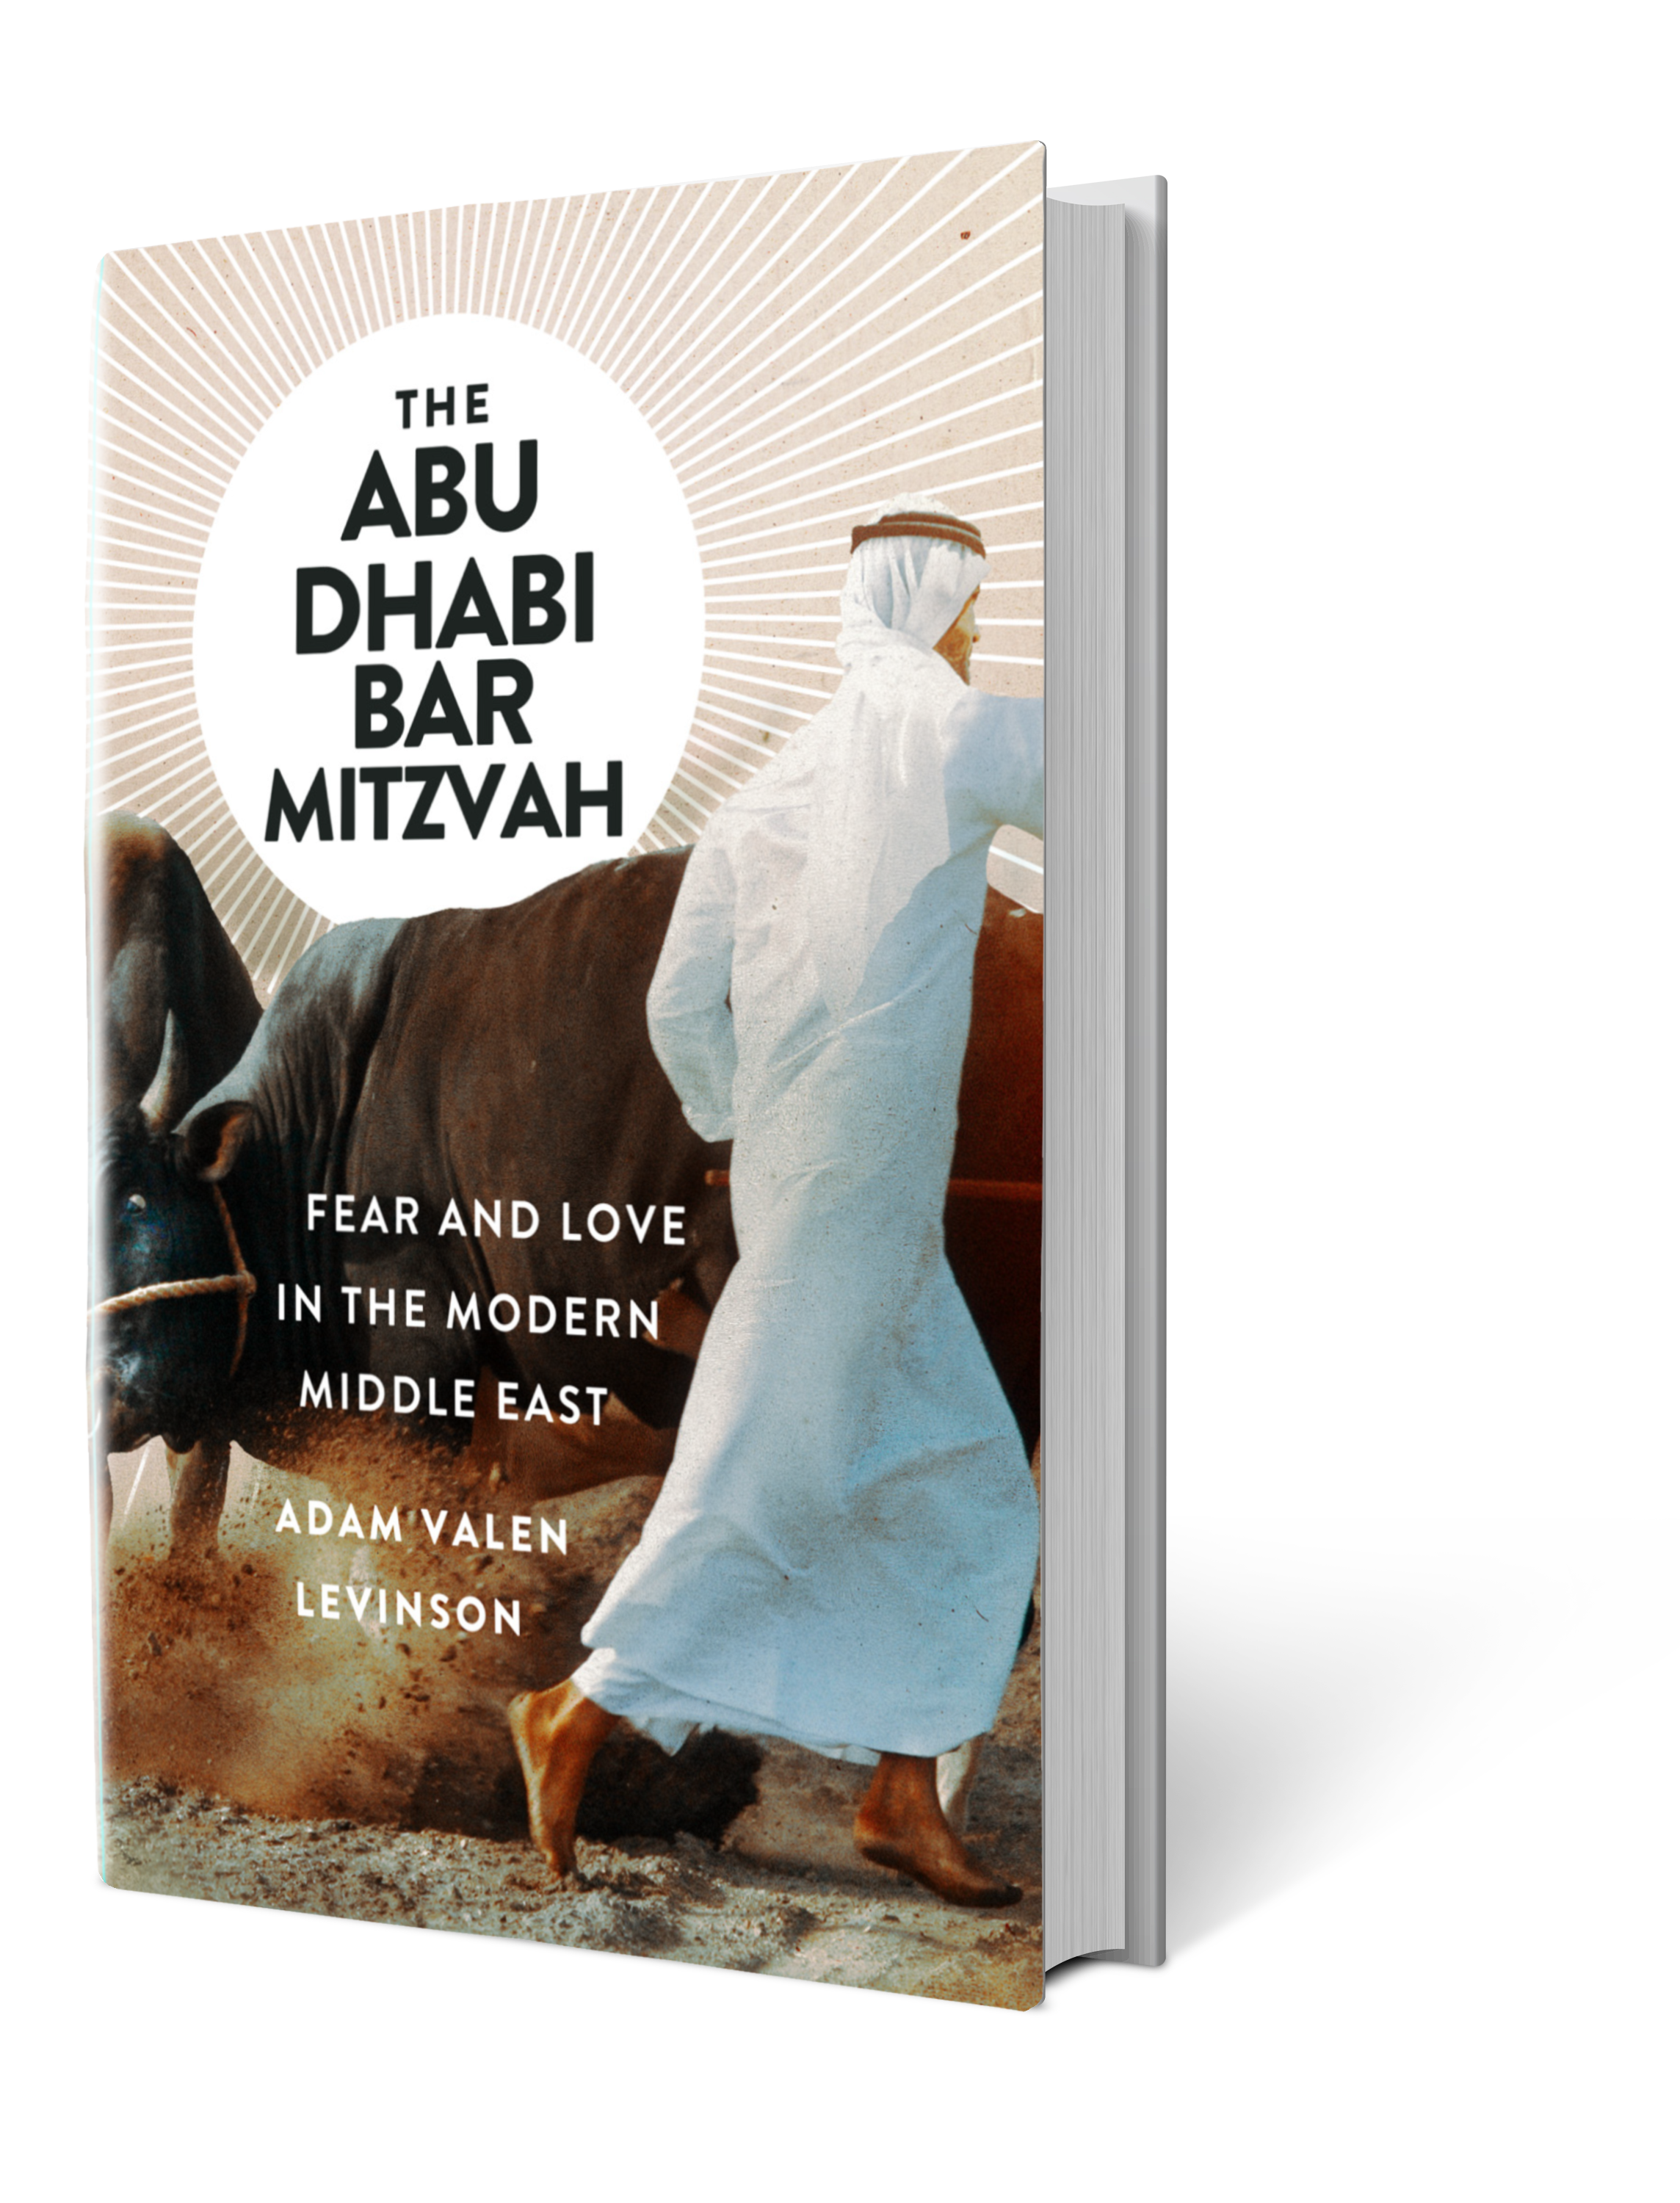 SOON: {1K/PP} - The Abu Dhabi Bar Mitzvah, page by page, in pictures...